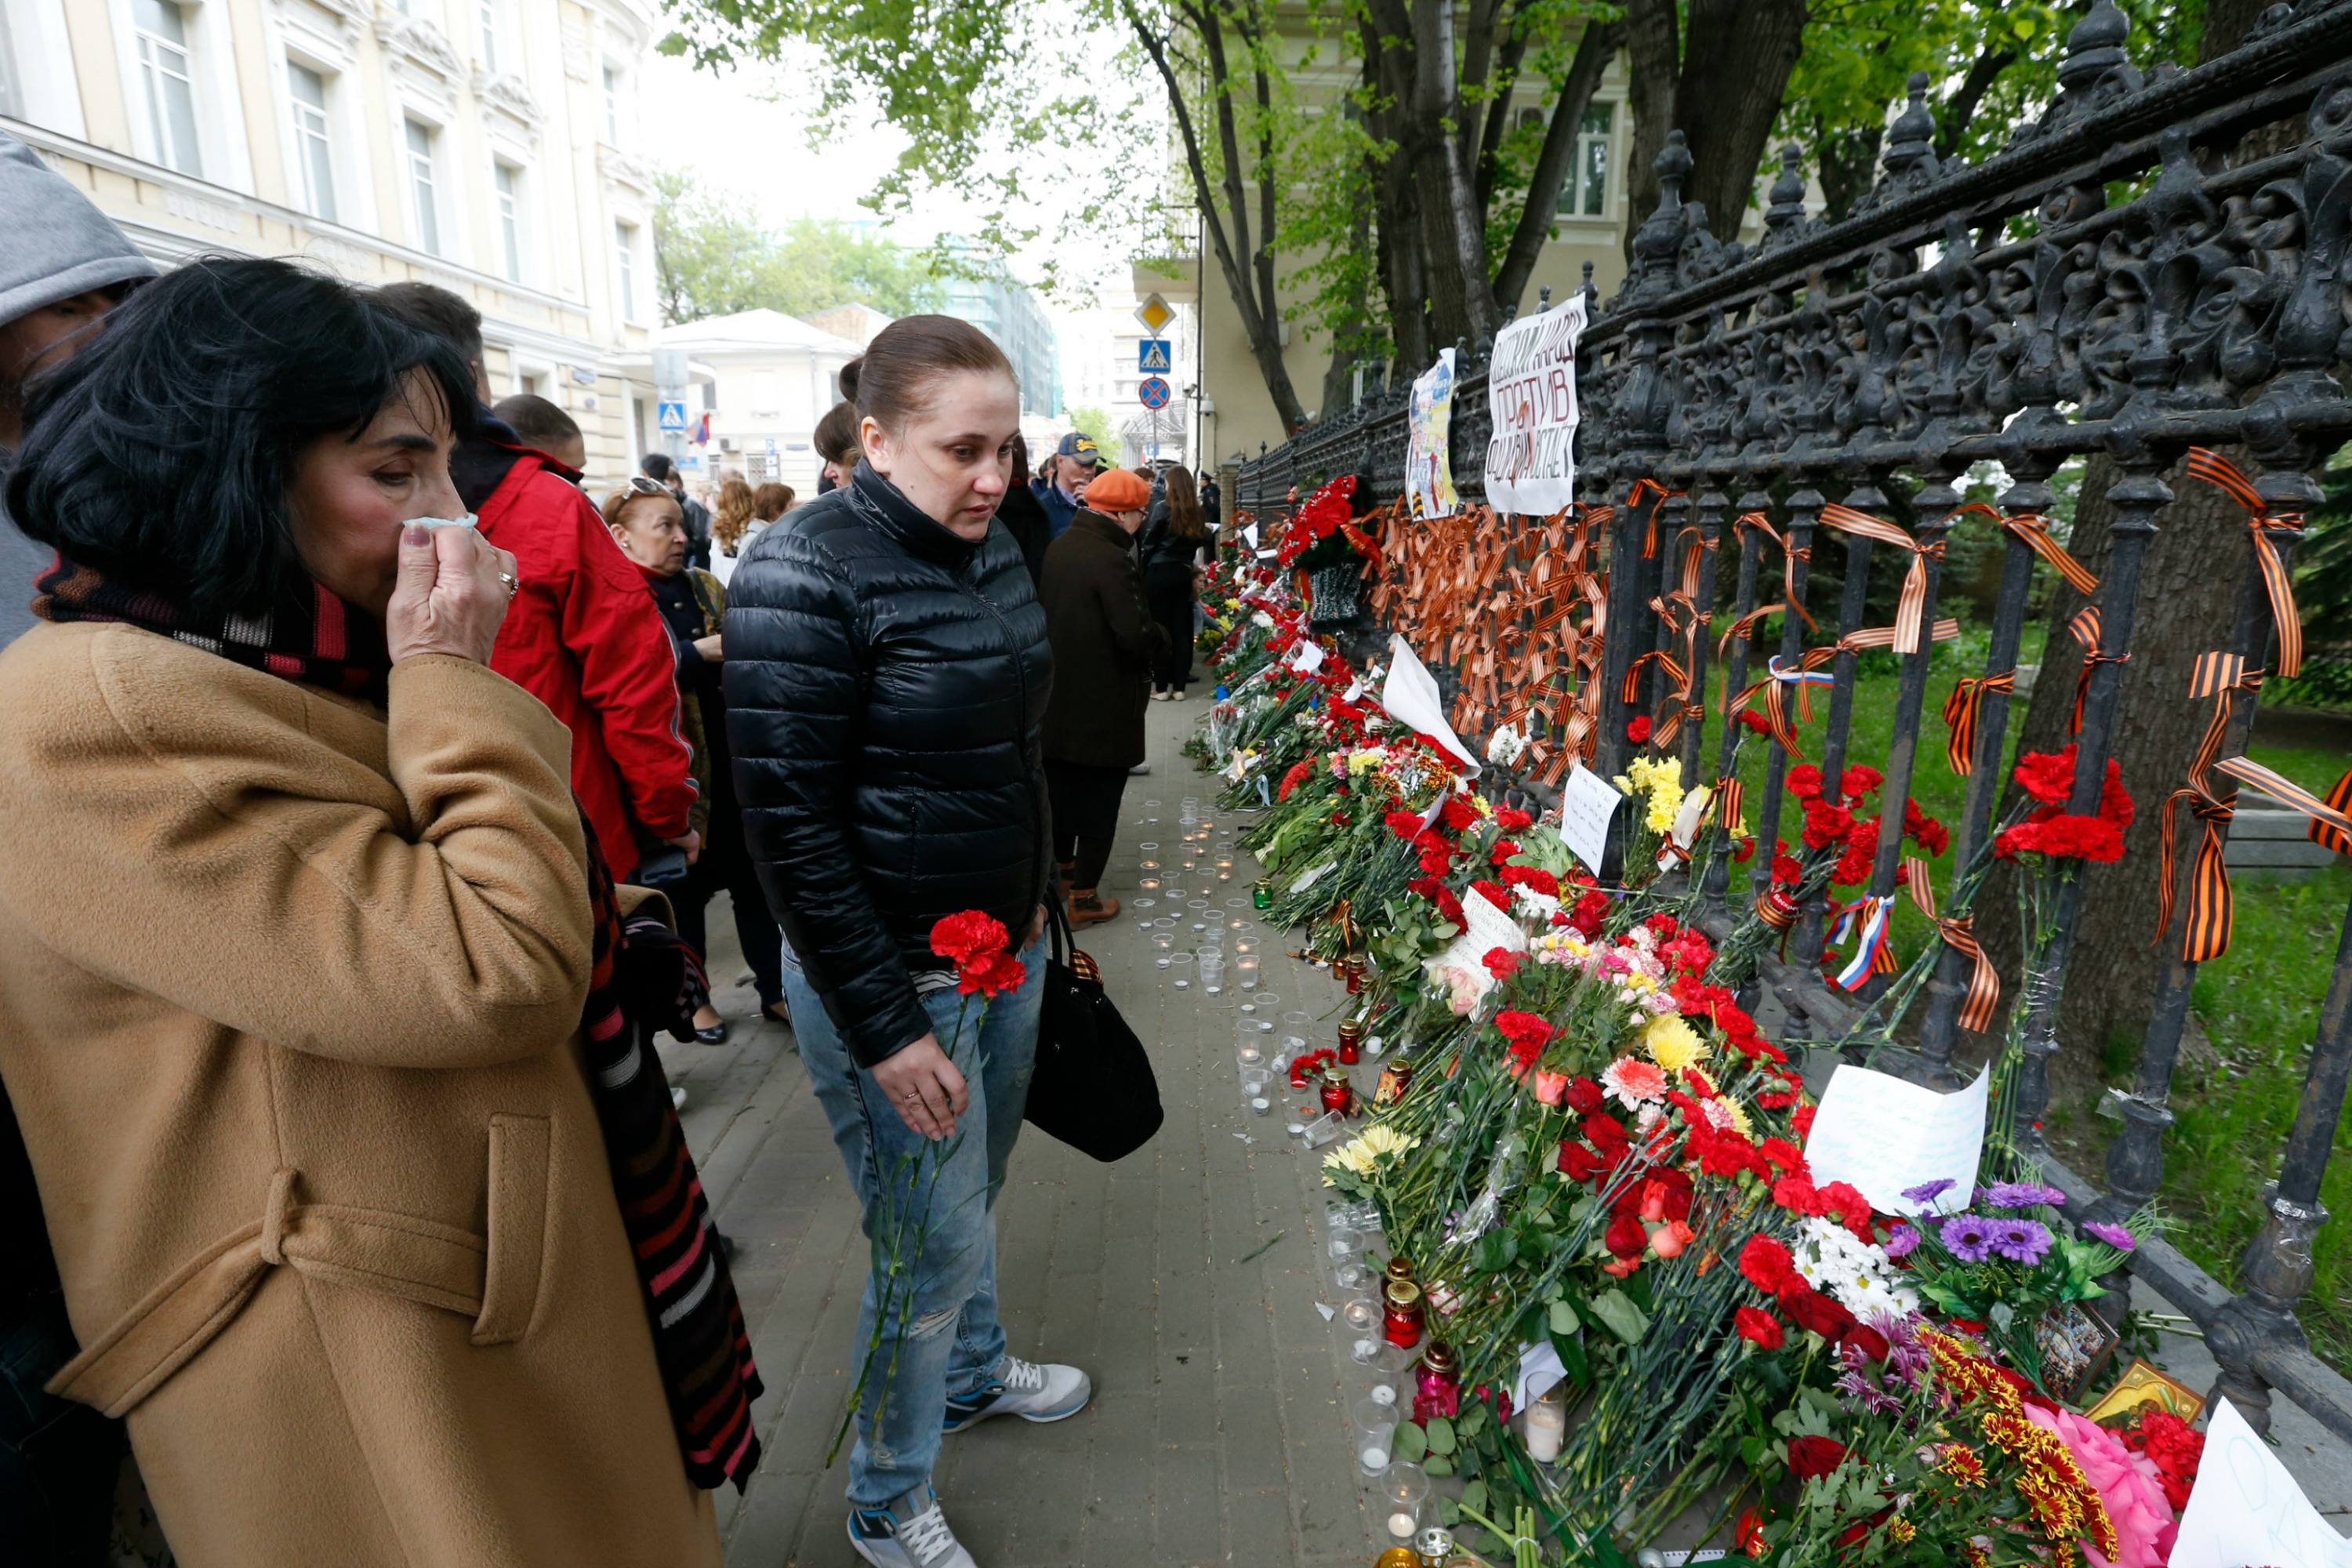 People bring flowers, lit candles and black and orange ribbons of St. George to mourn the death in Odessa, at the gate of the Ukrainian embassy in Moscow. Photo Reuters